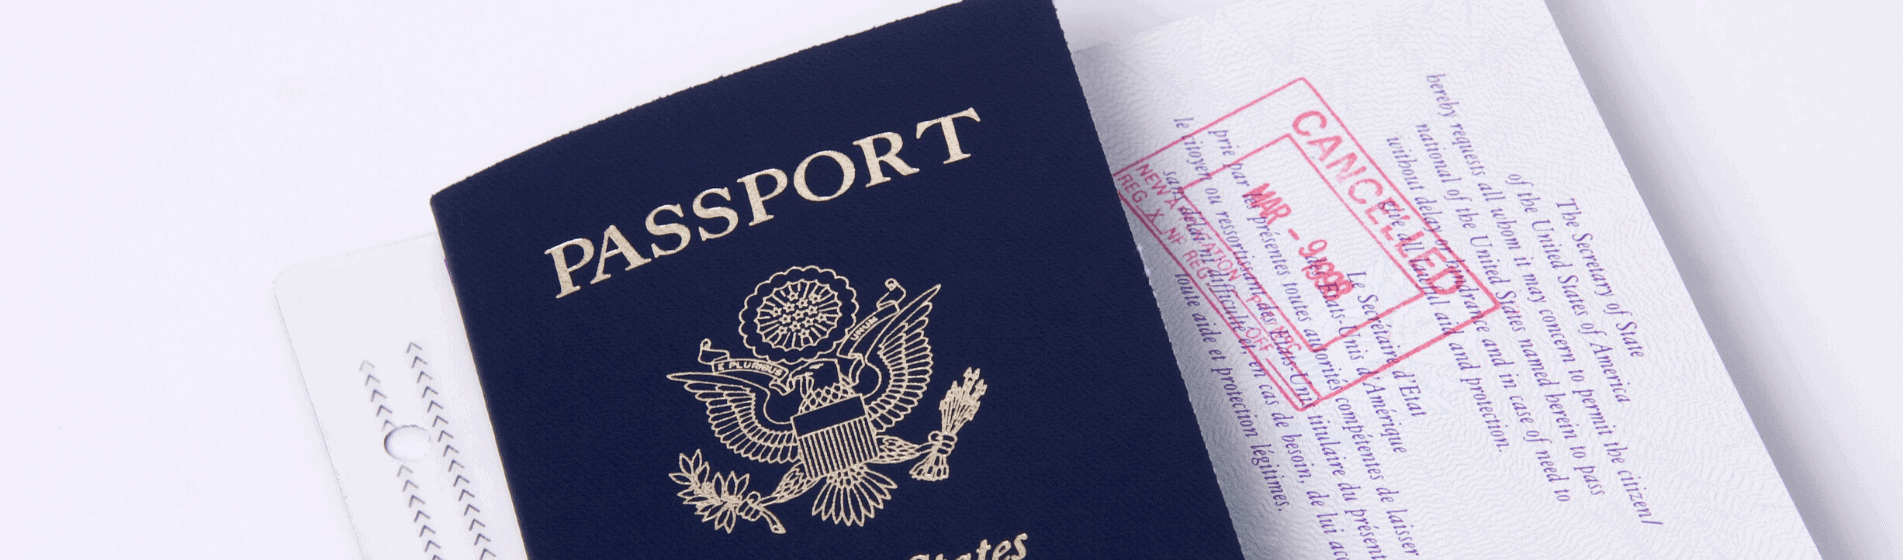 How to get your passport cancelled, courtesy of the IRS